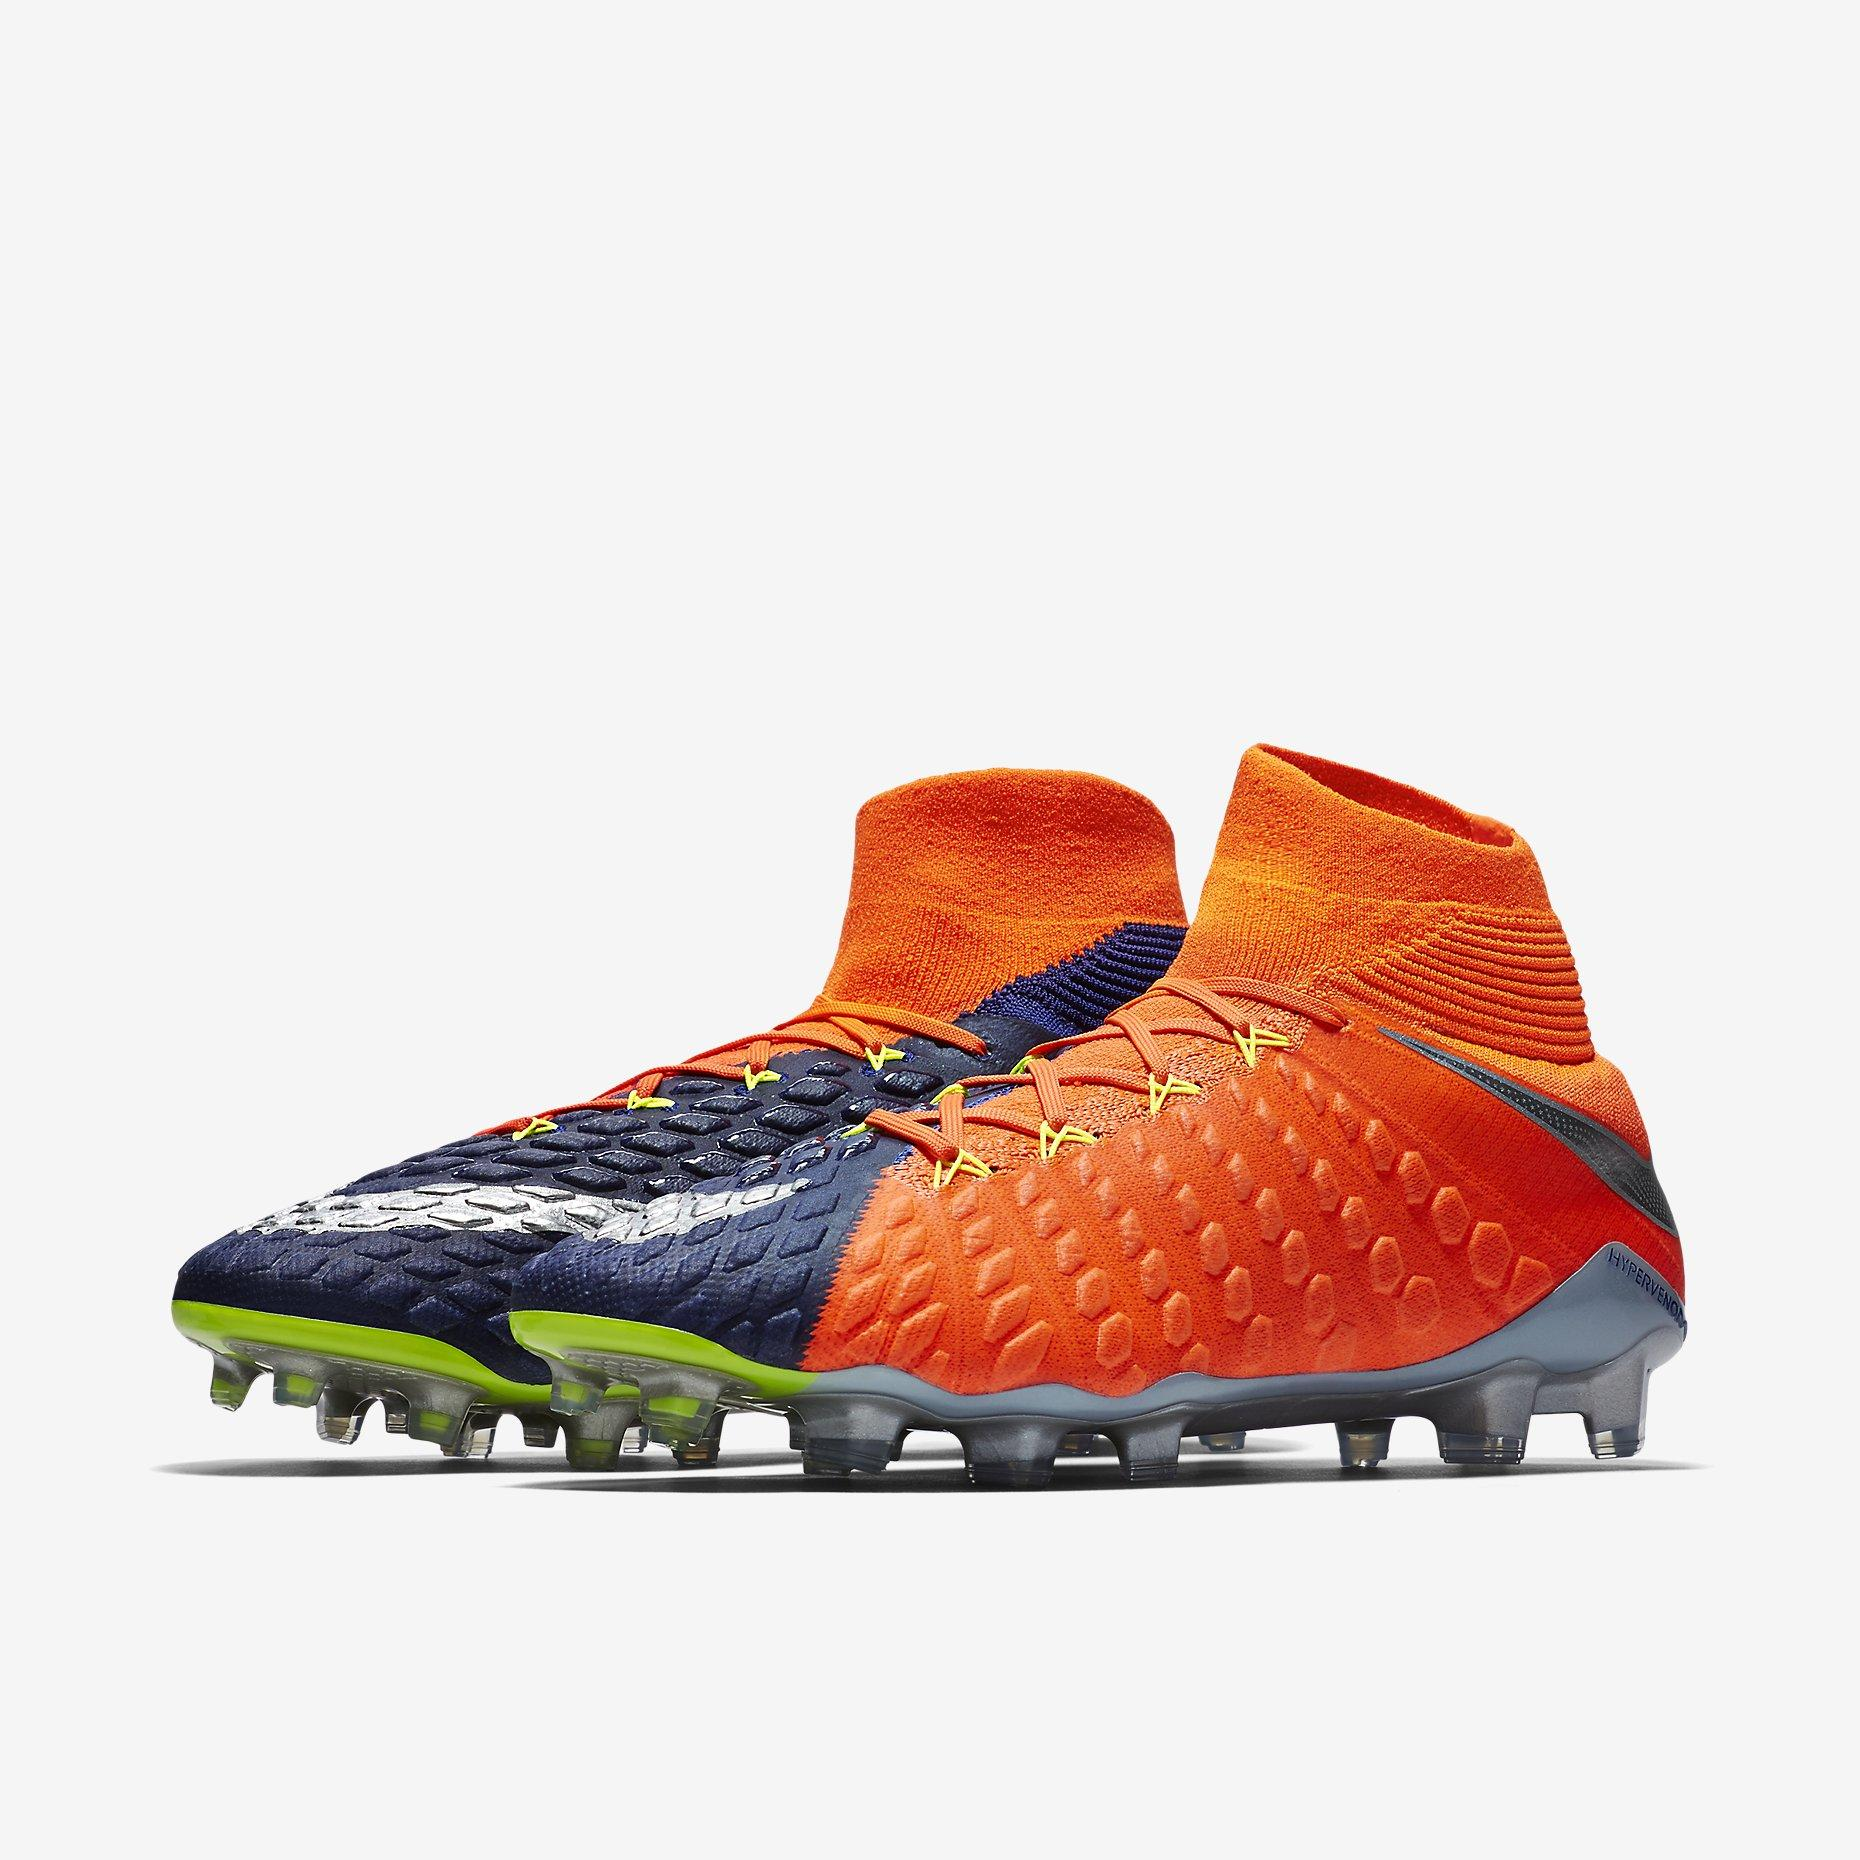 Nike Hypervenom Phantom Iii Df Firm Ground Boots By Soccer Unlimited (capitaland Merchant).